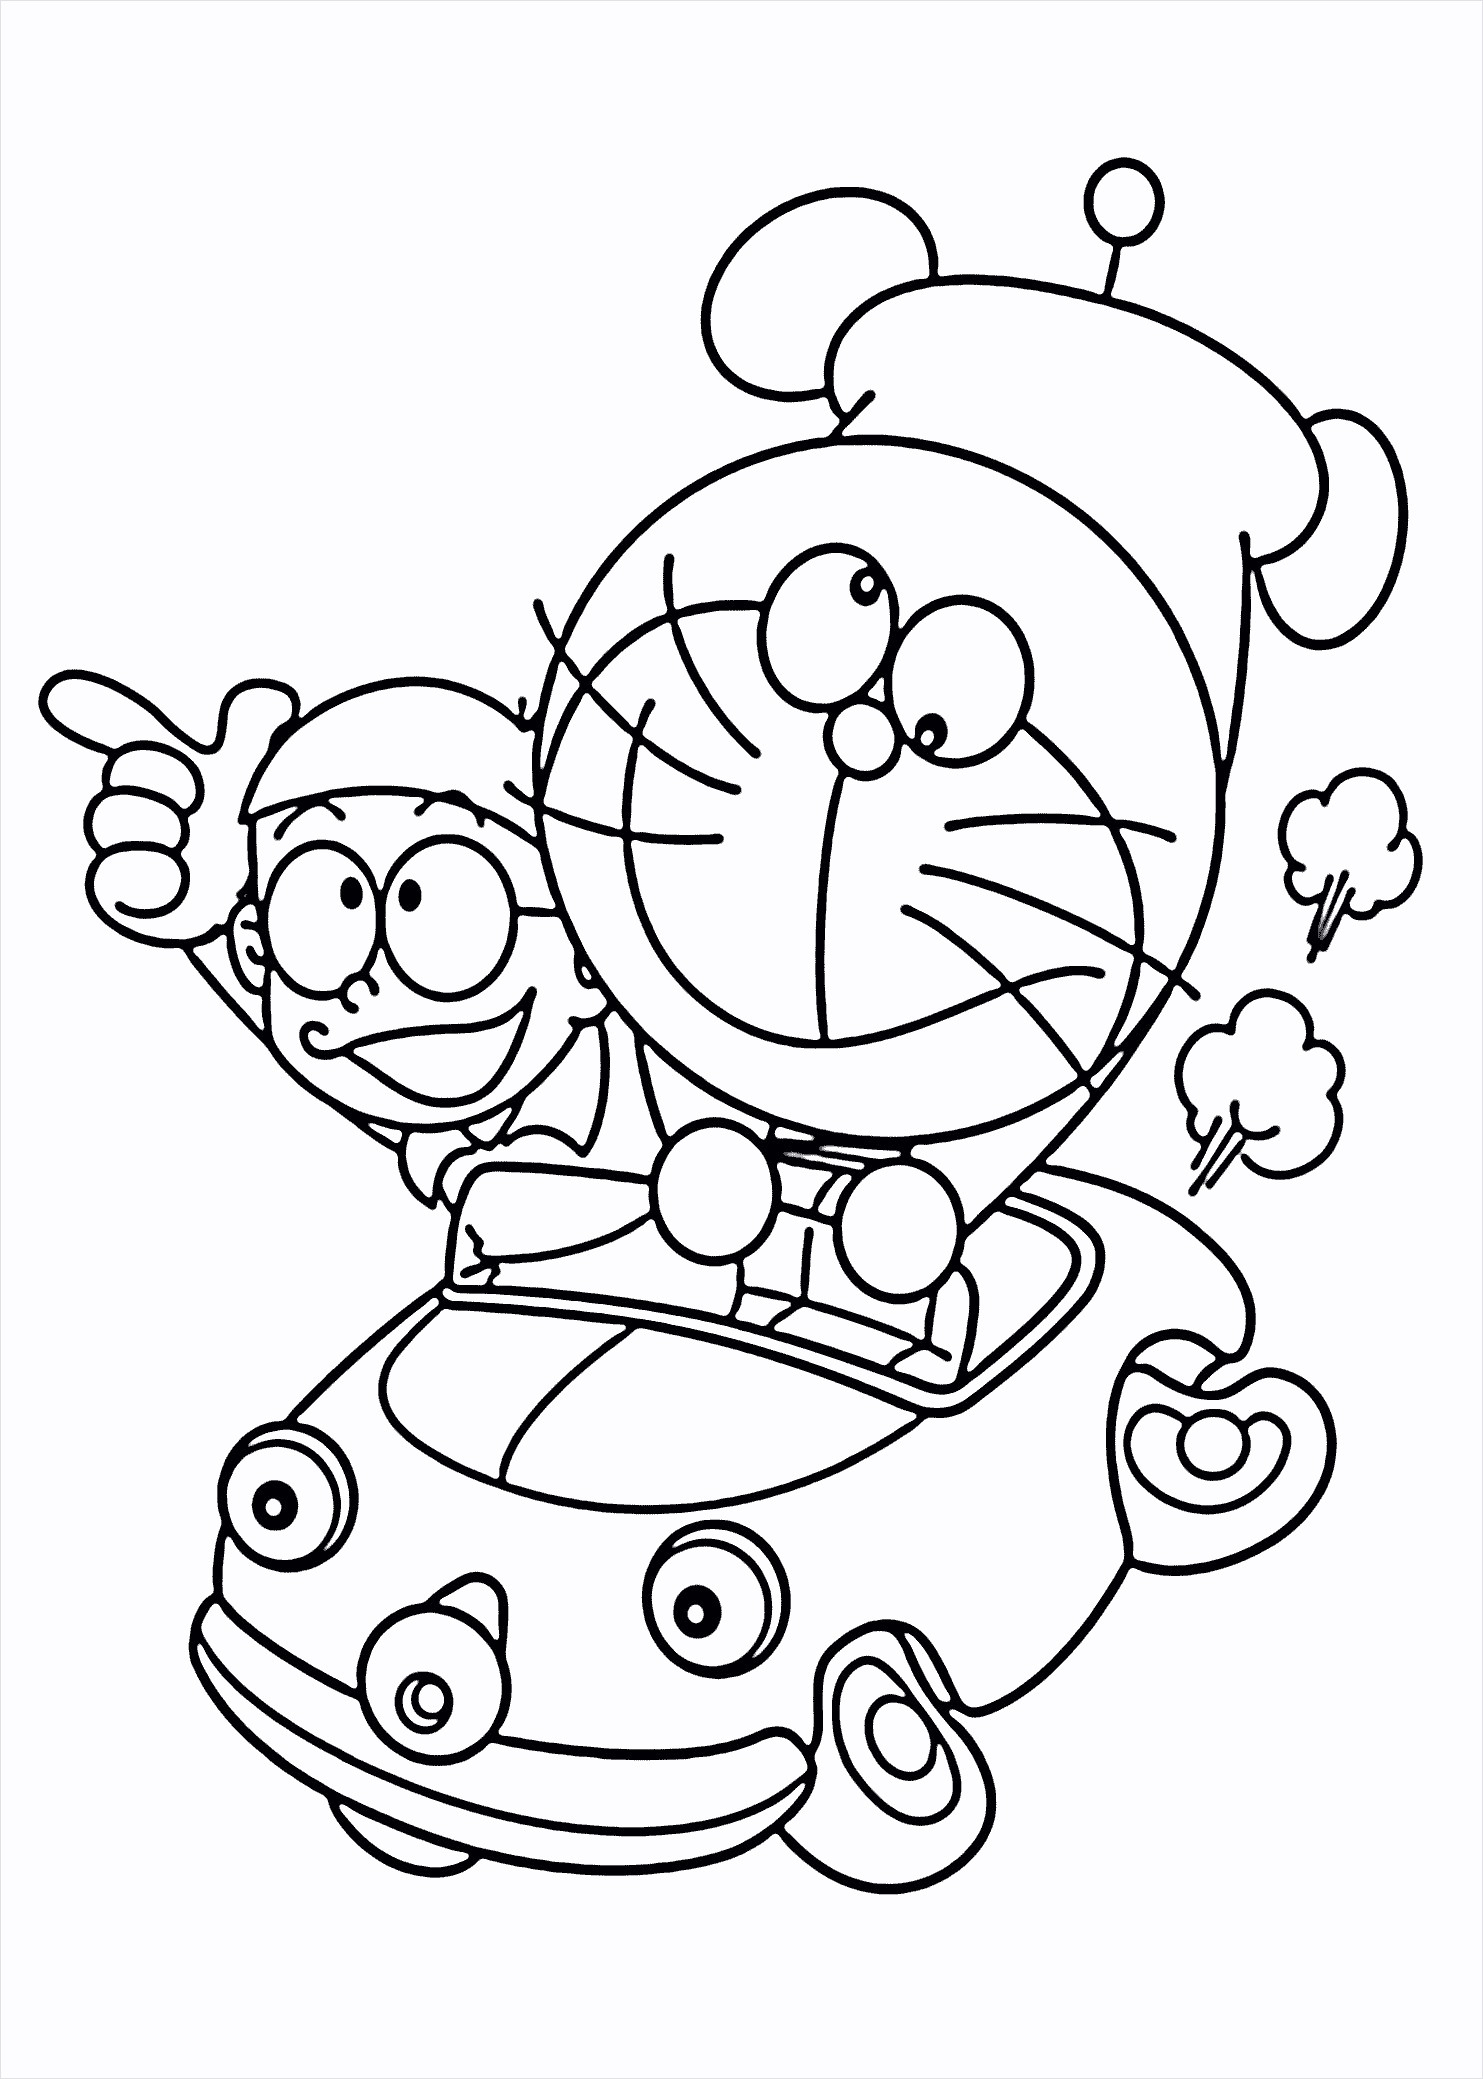 - Printable Coloring Pages For Toddlers Coloring Books For Toddlers